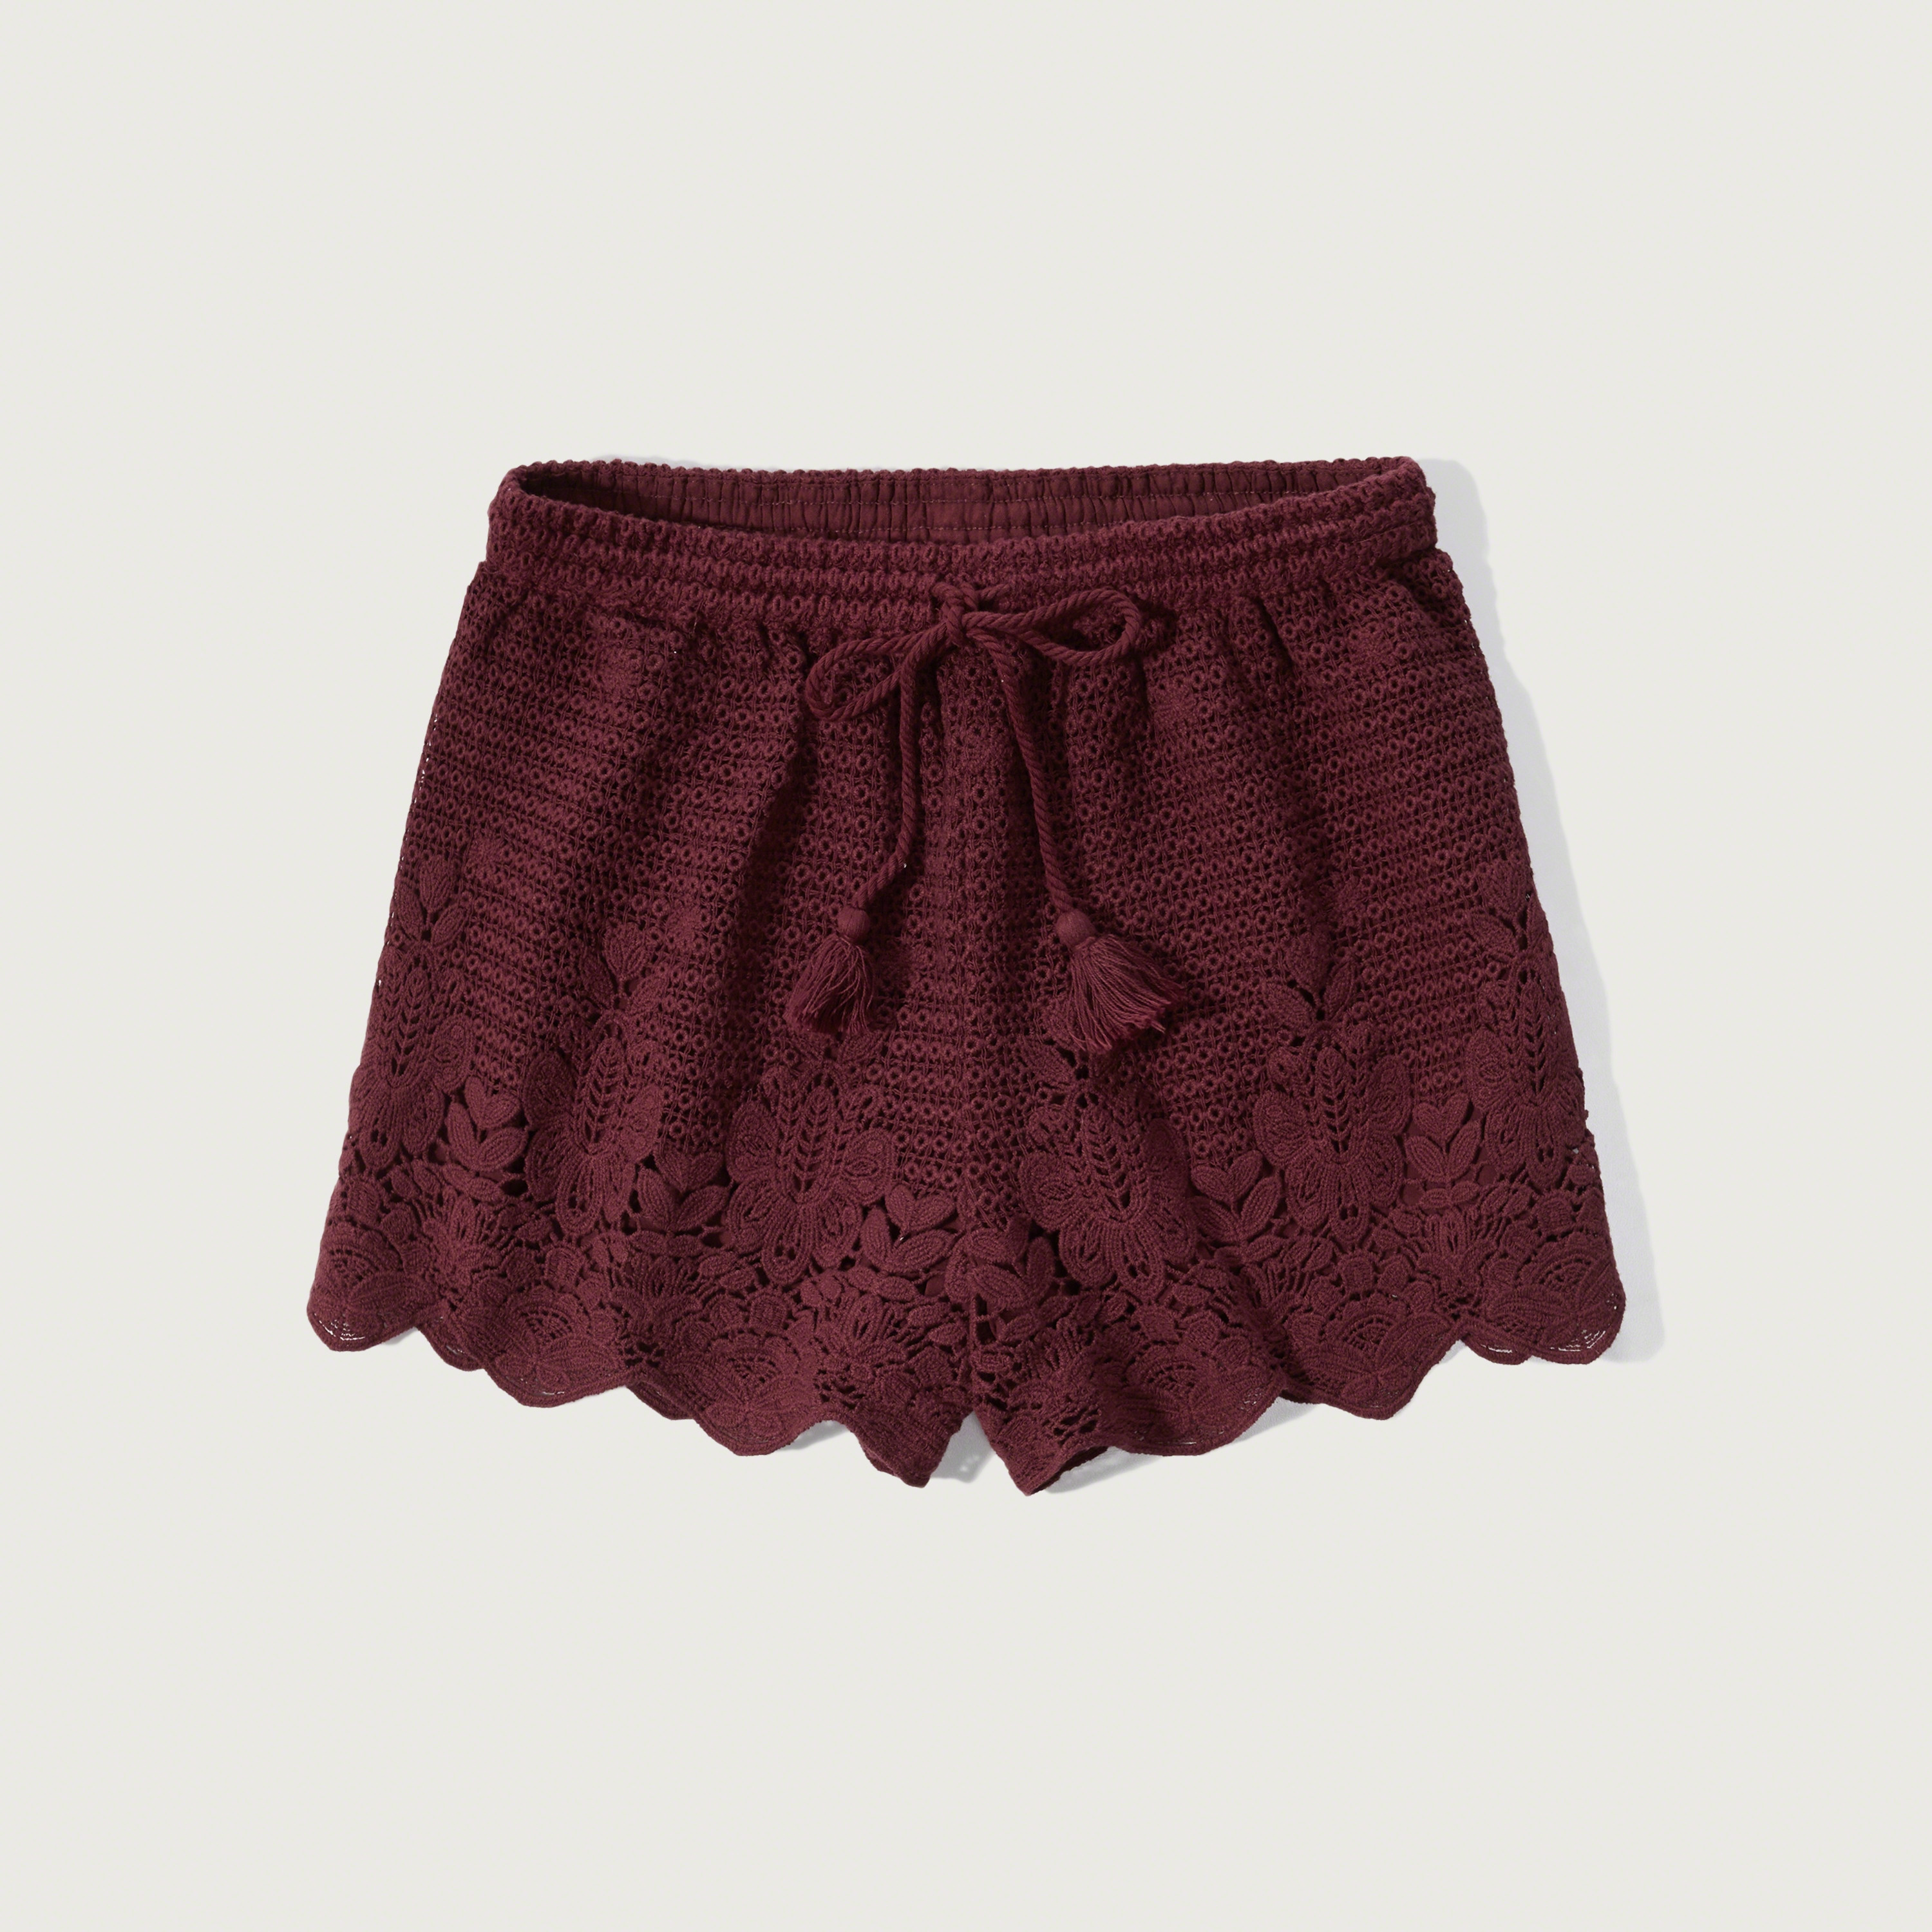 Abercrombie & fitch Crochet Lace Soft Shorts in Purple